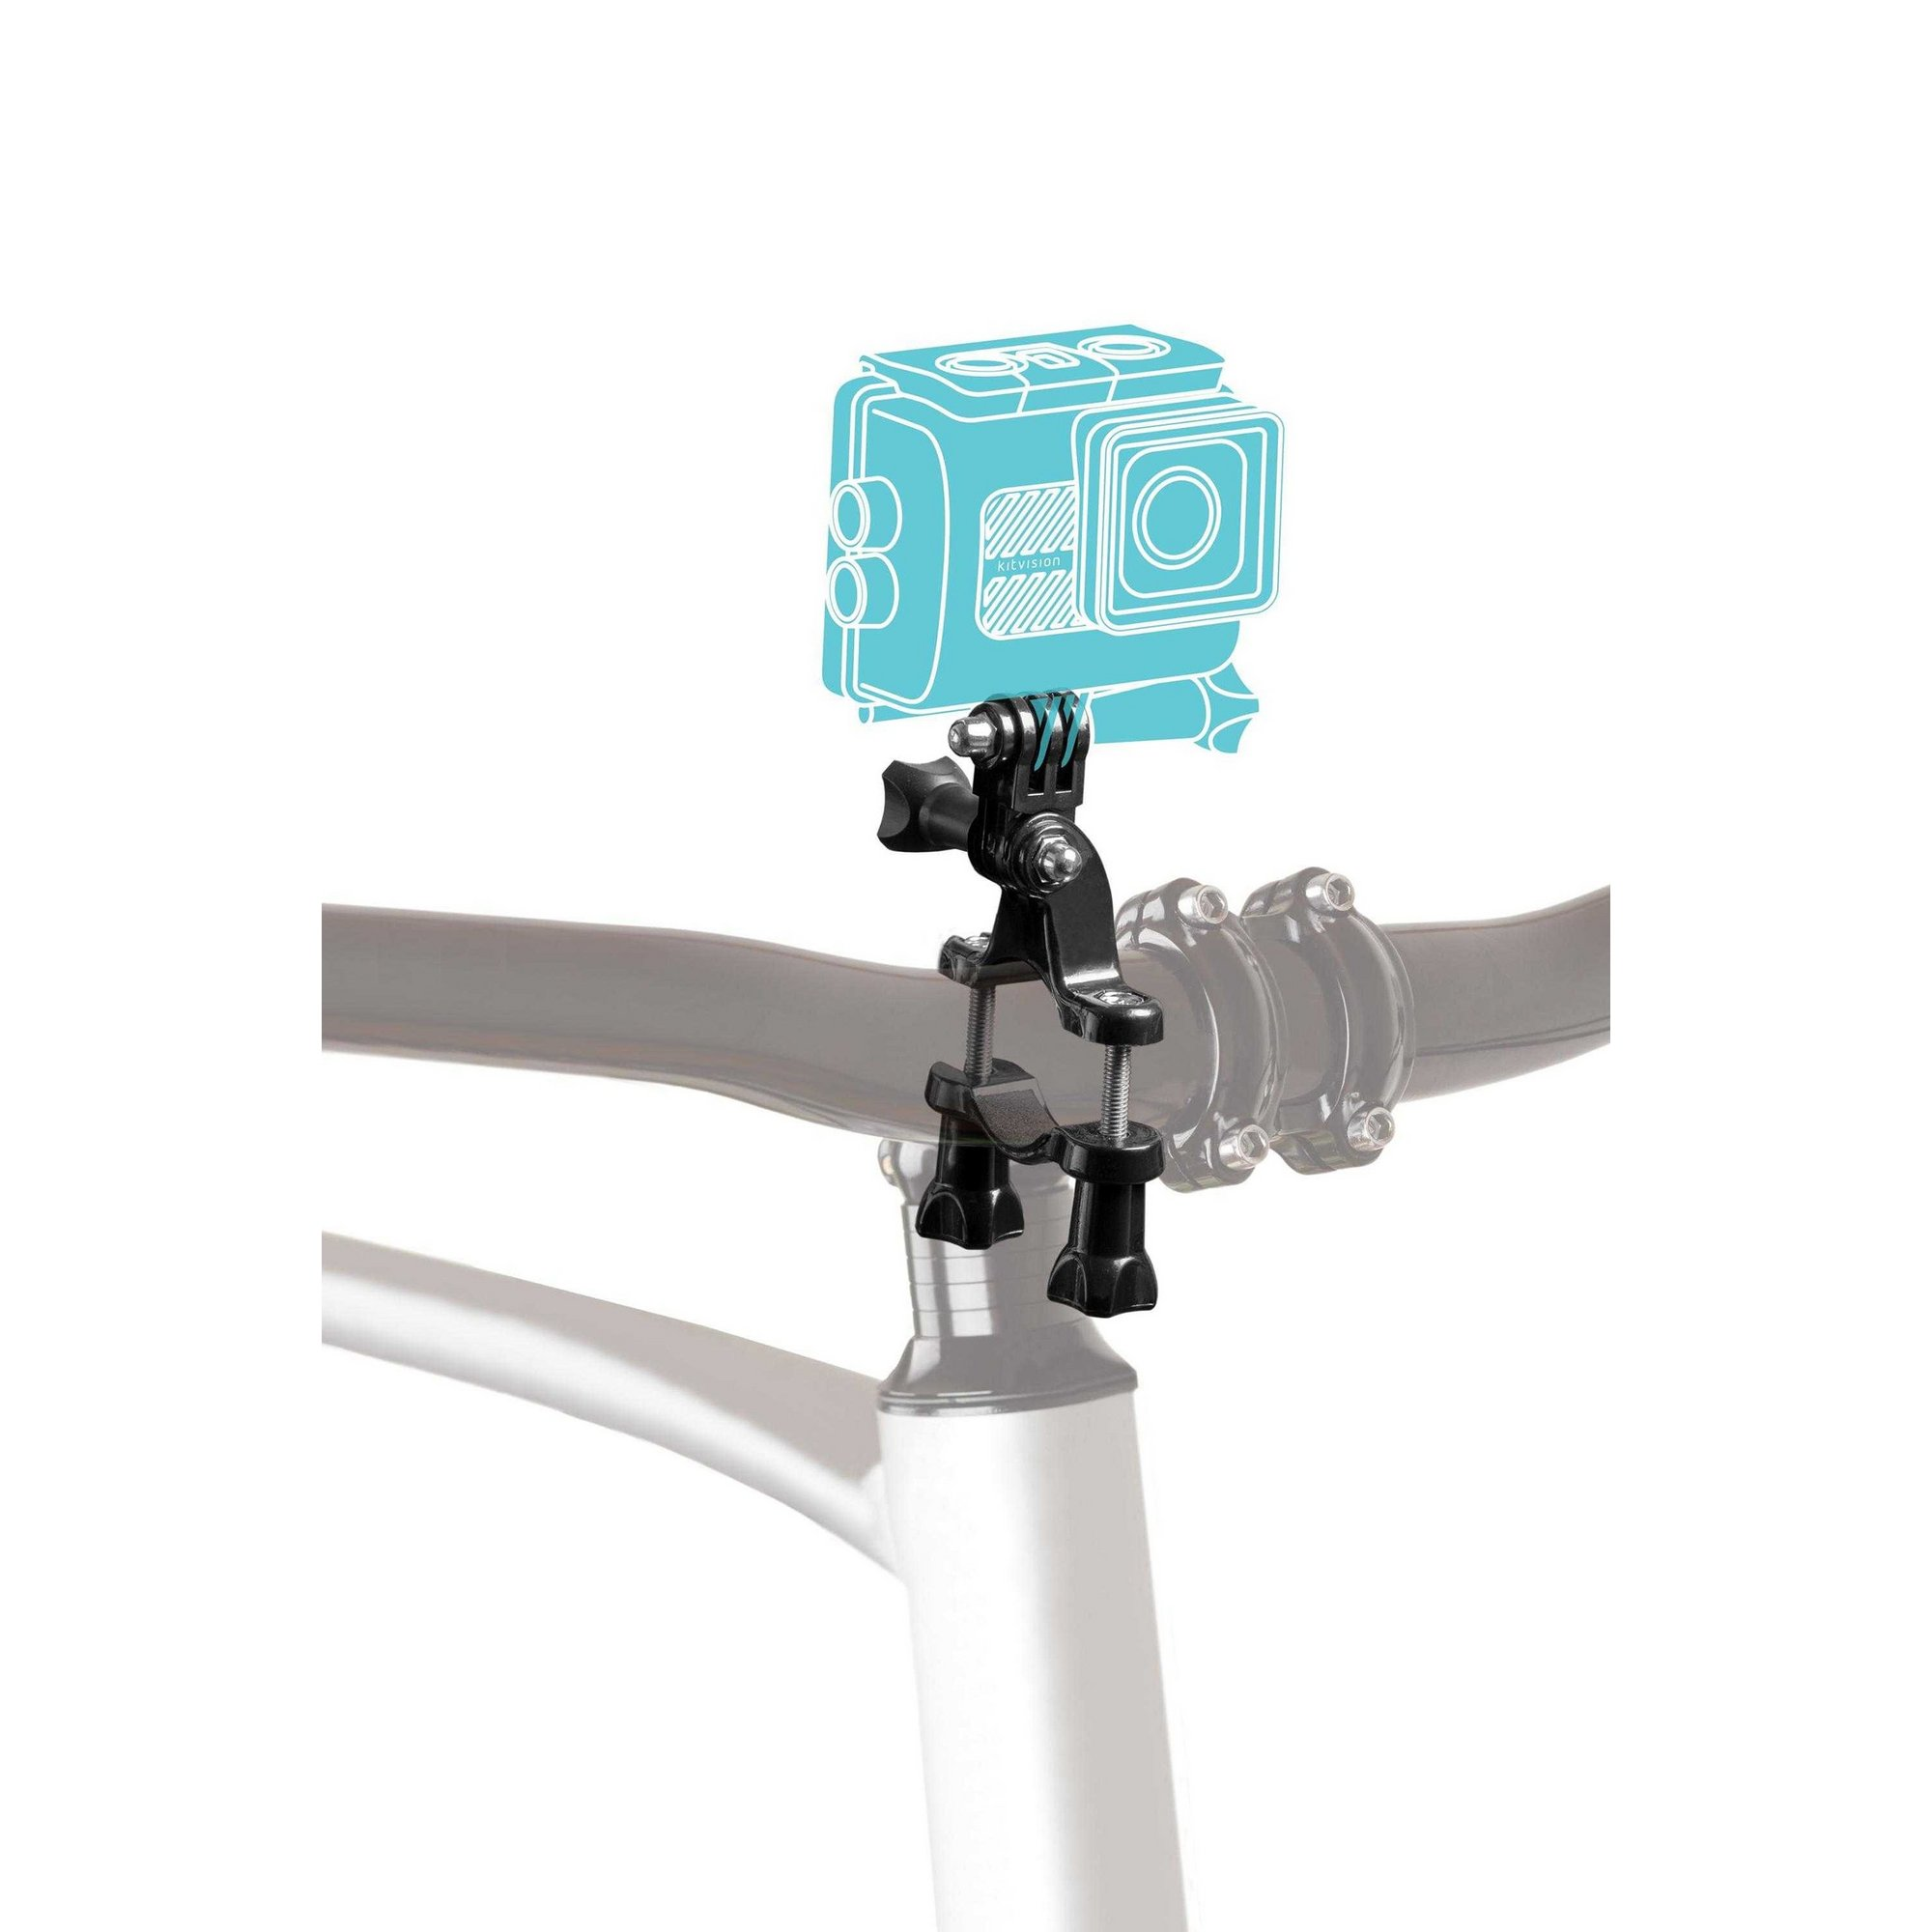 Image of KitVision Action Camera Bike Mount